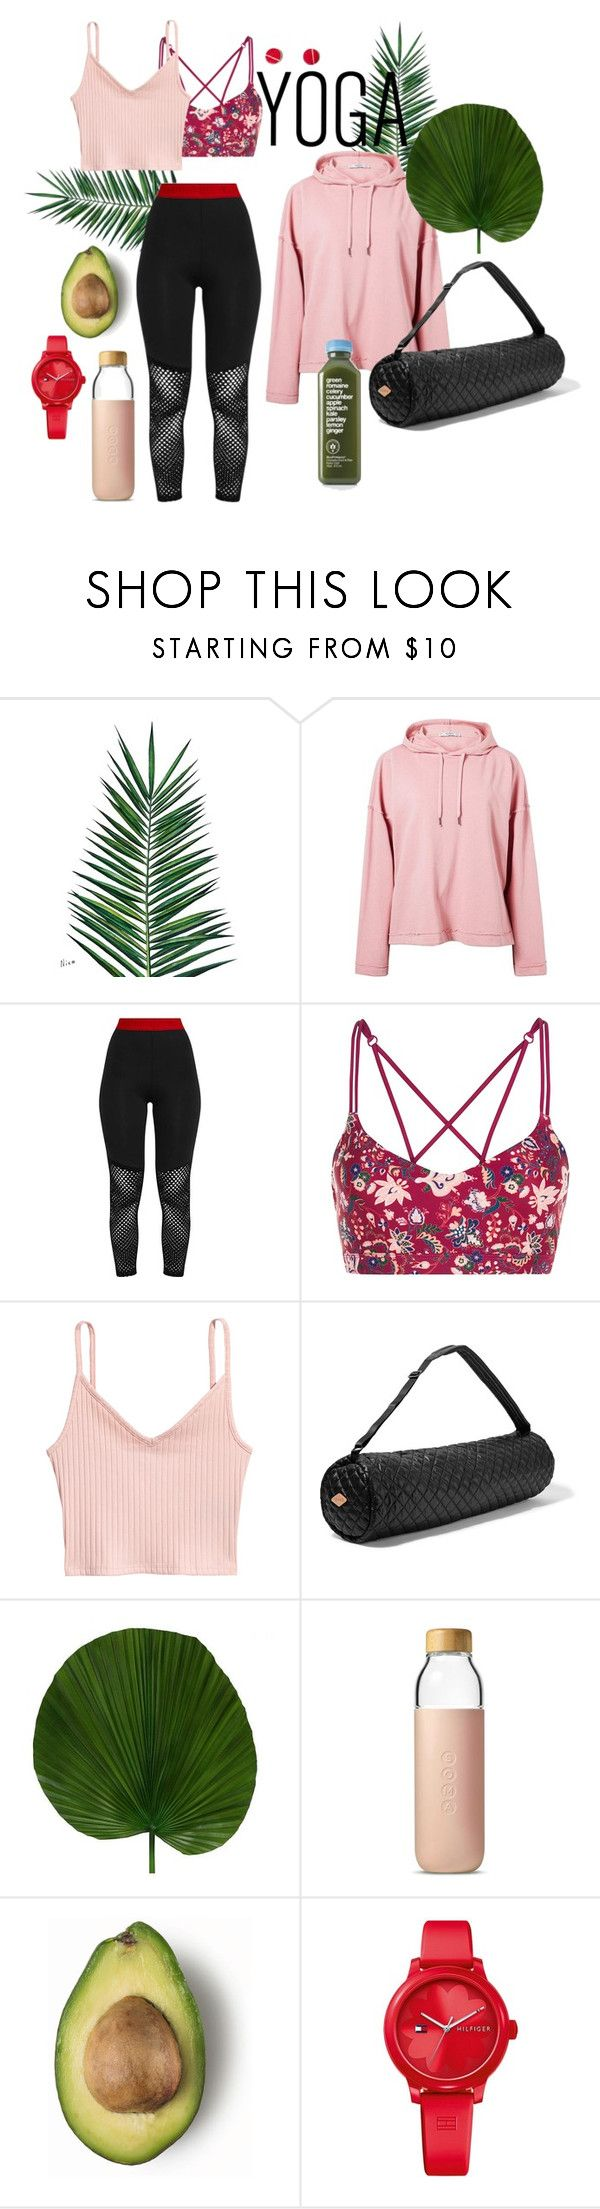 """yoga"" by nover on Polyvore featuring Nika, MANGO, Pretty Little Thing, Lorna Jane, M Z Wallace, Soma and Tommy Hilfiger"